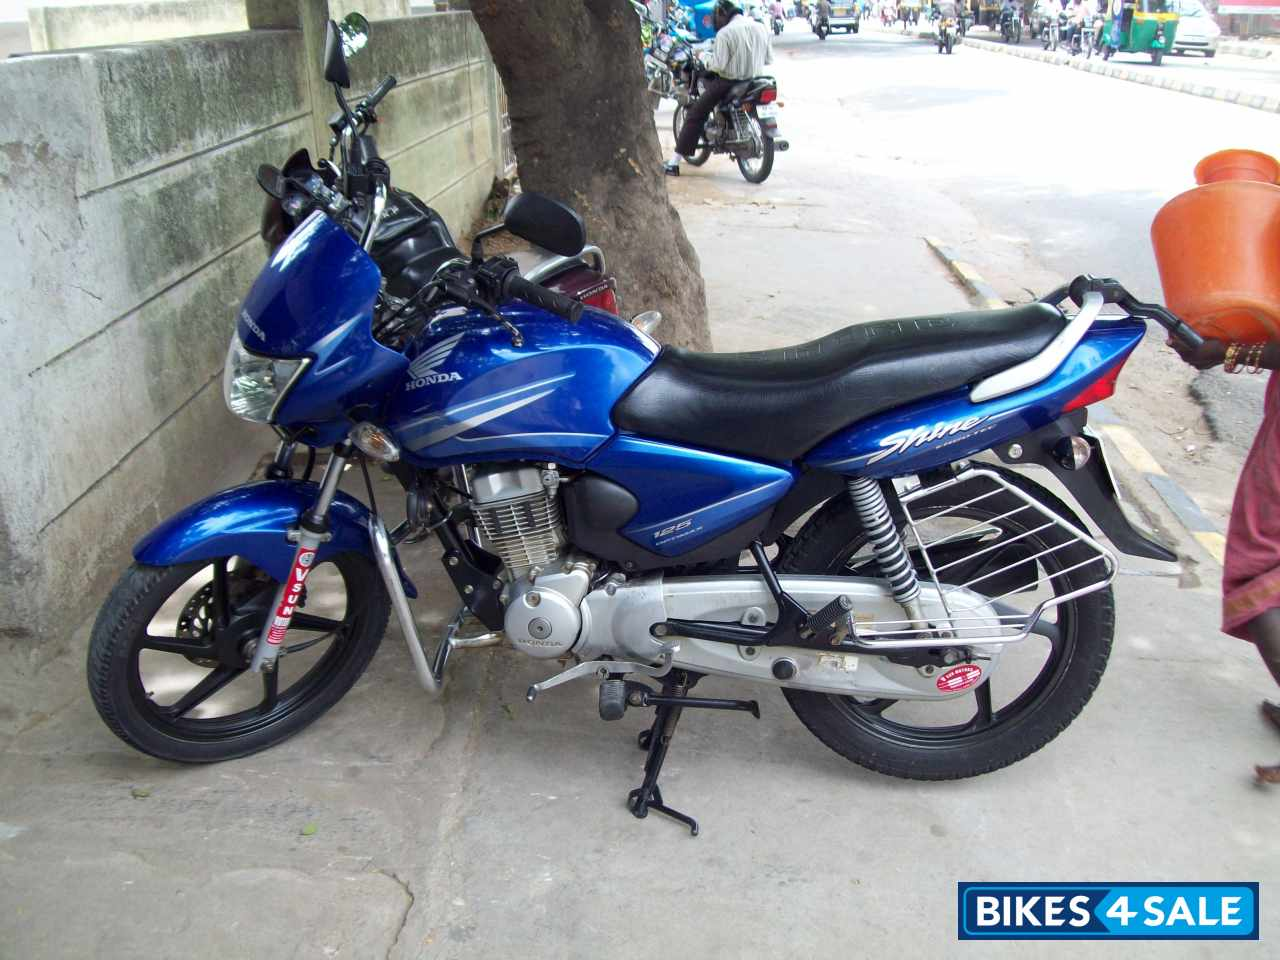 Best Value Electric Bike >> Honda Shine Picture 1. Bike ID 84814. Bike located in ...